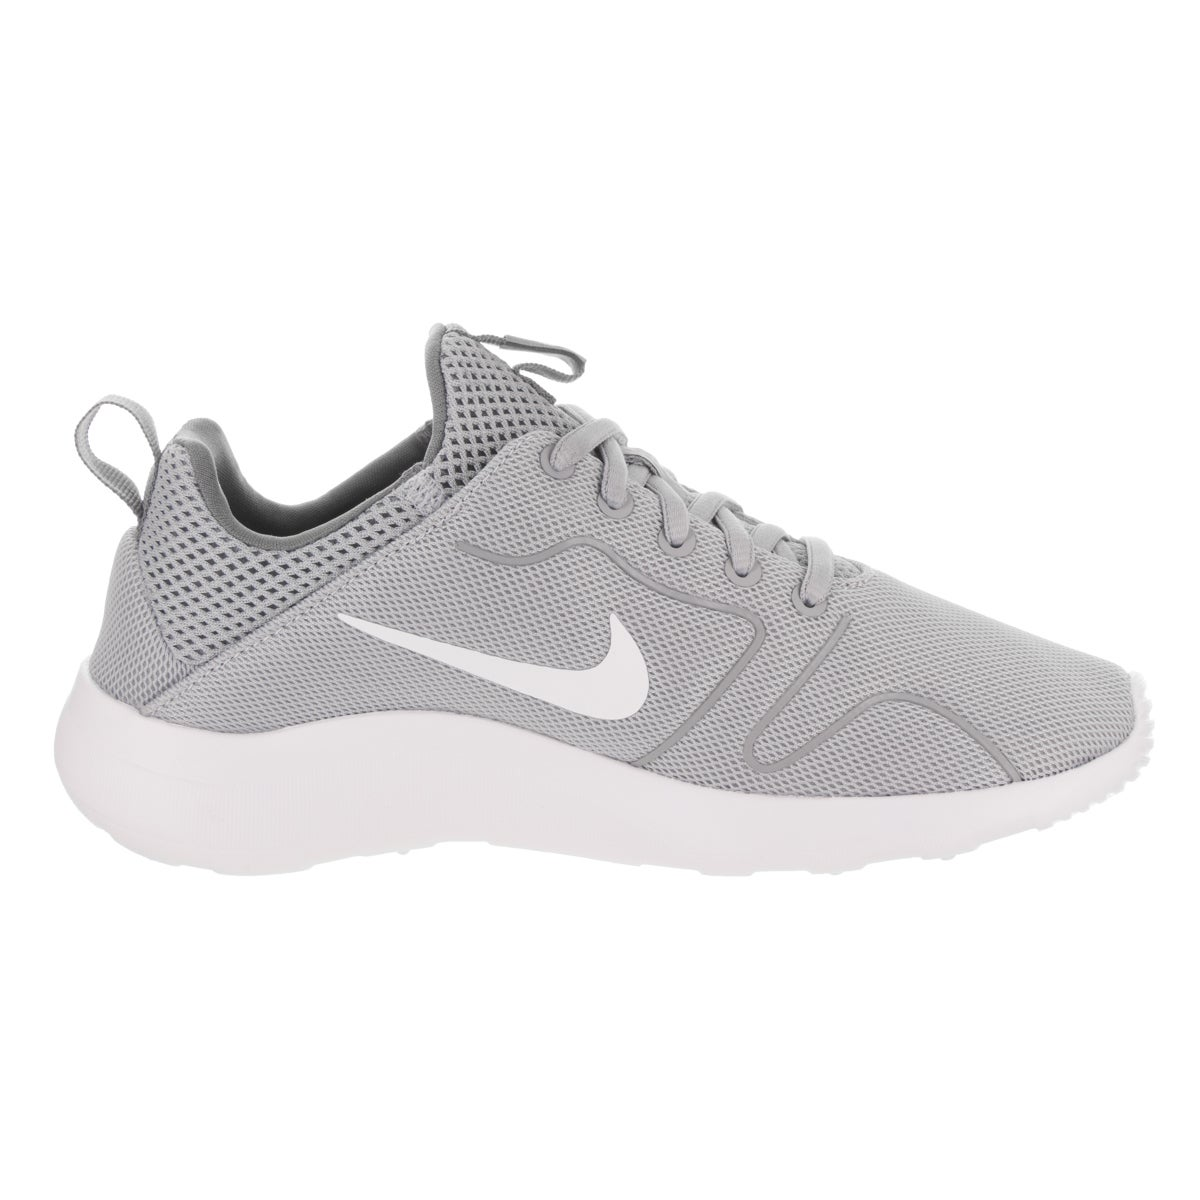 c339fc80f0f031 Shop Nike Women s Kaishi 2.0 Running Shoe - Free Shipping Today - Overstock  - 15858405